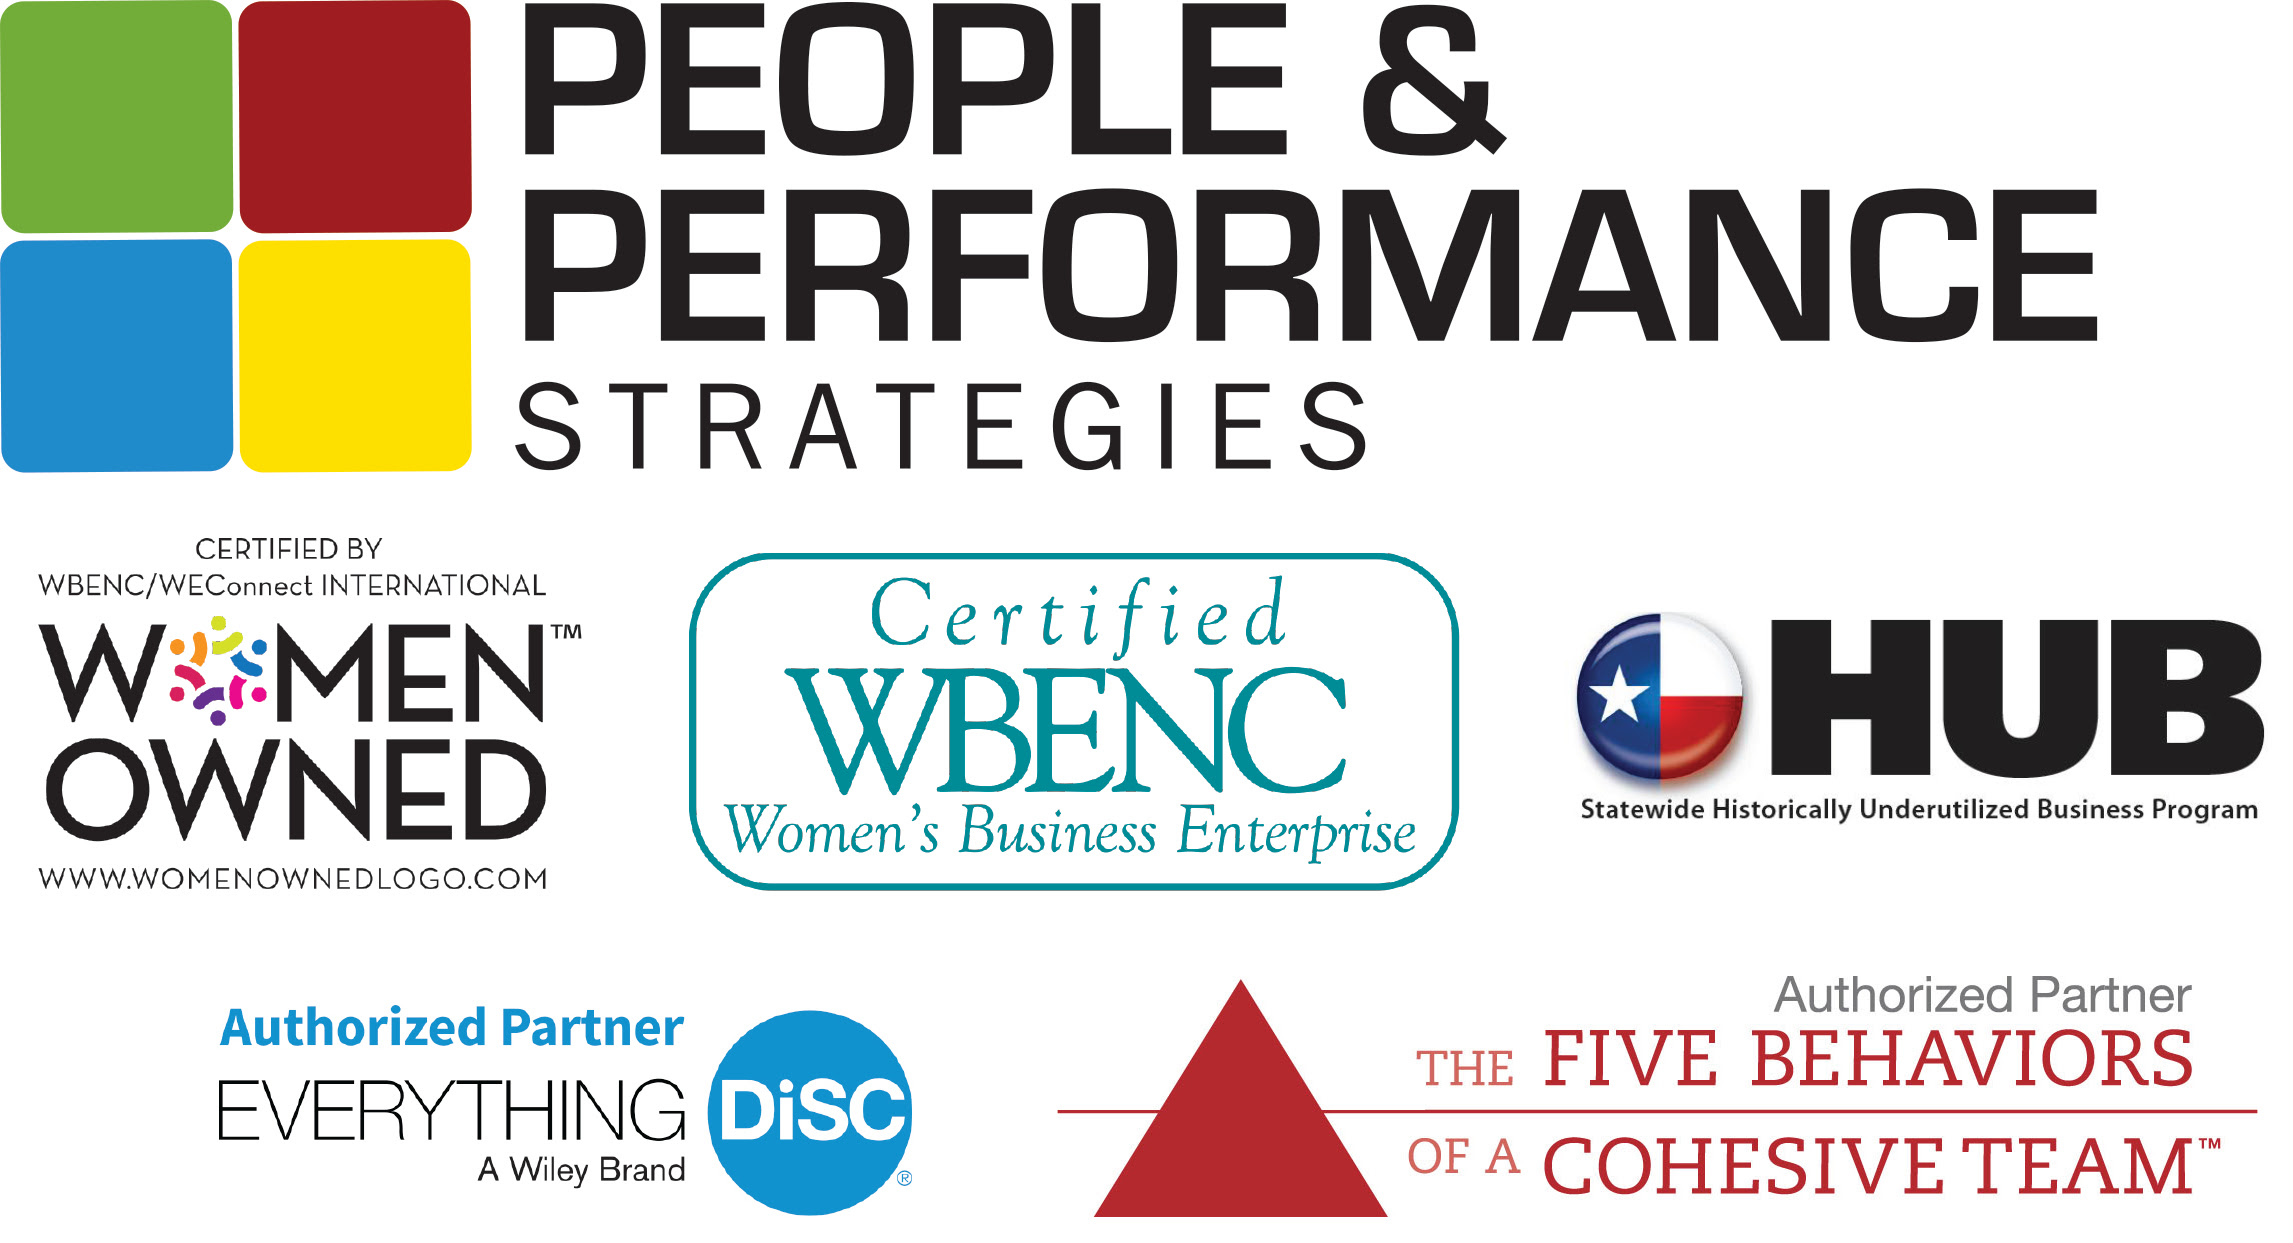 Credentials Woman Owned Business Everything DiSC 5 Behaviors of a Cohesive Team